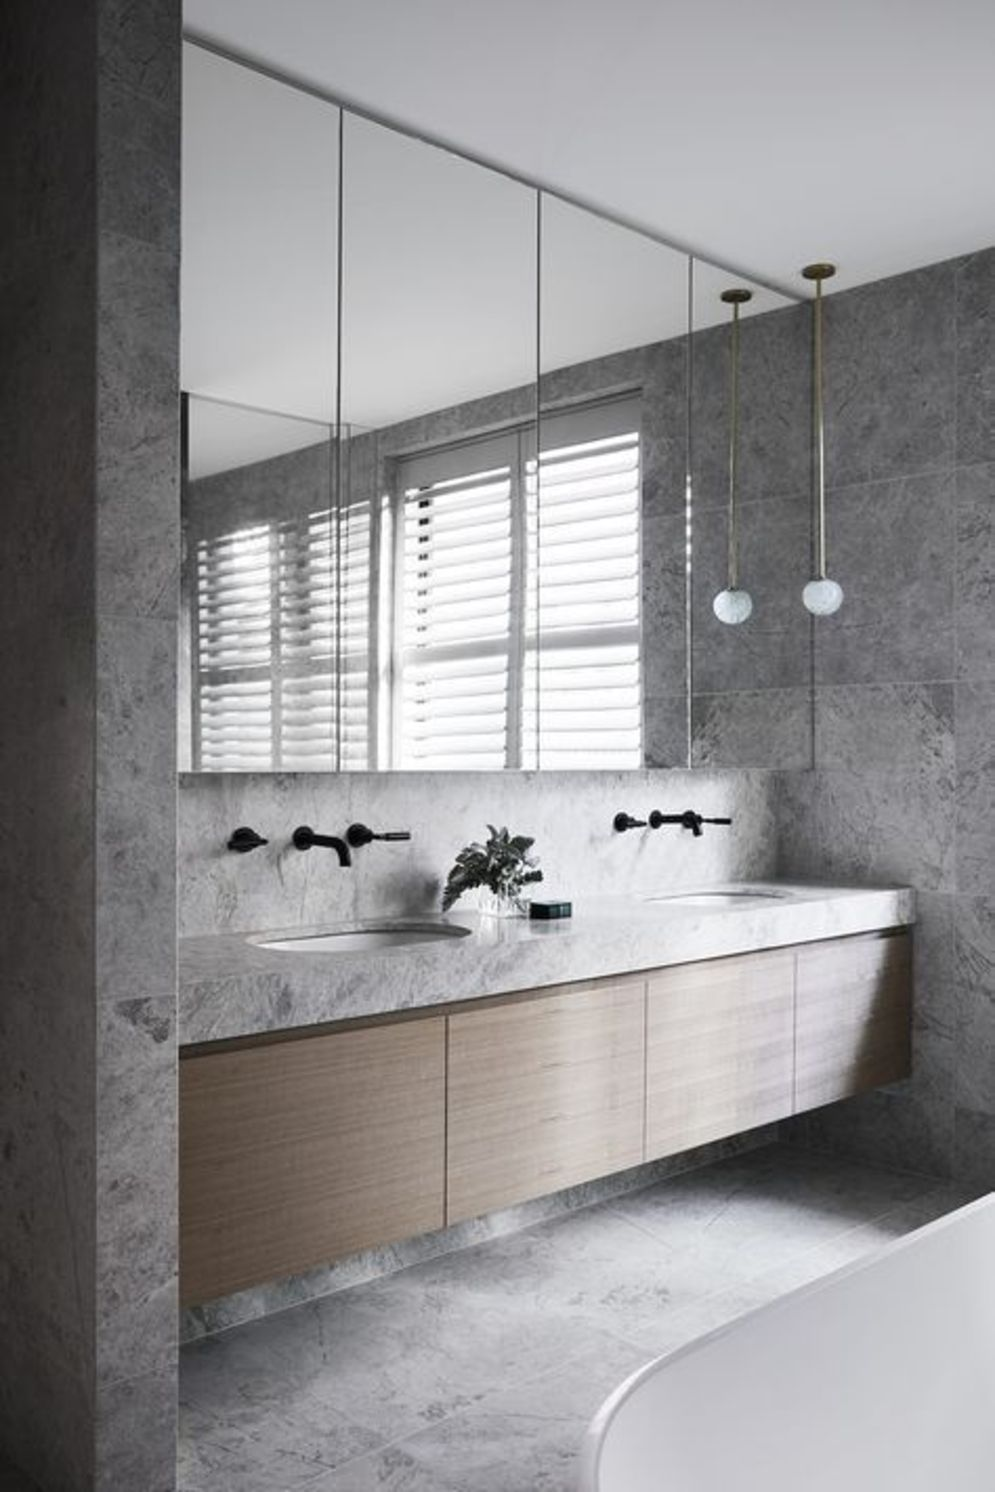 Most savvy bathroom designs with elegant wood finish to give more natural feel Image 4